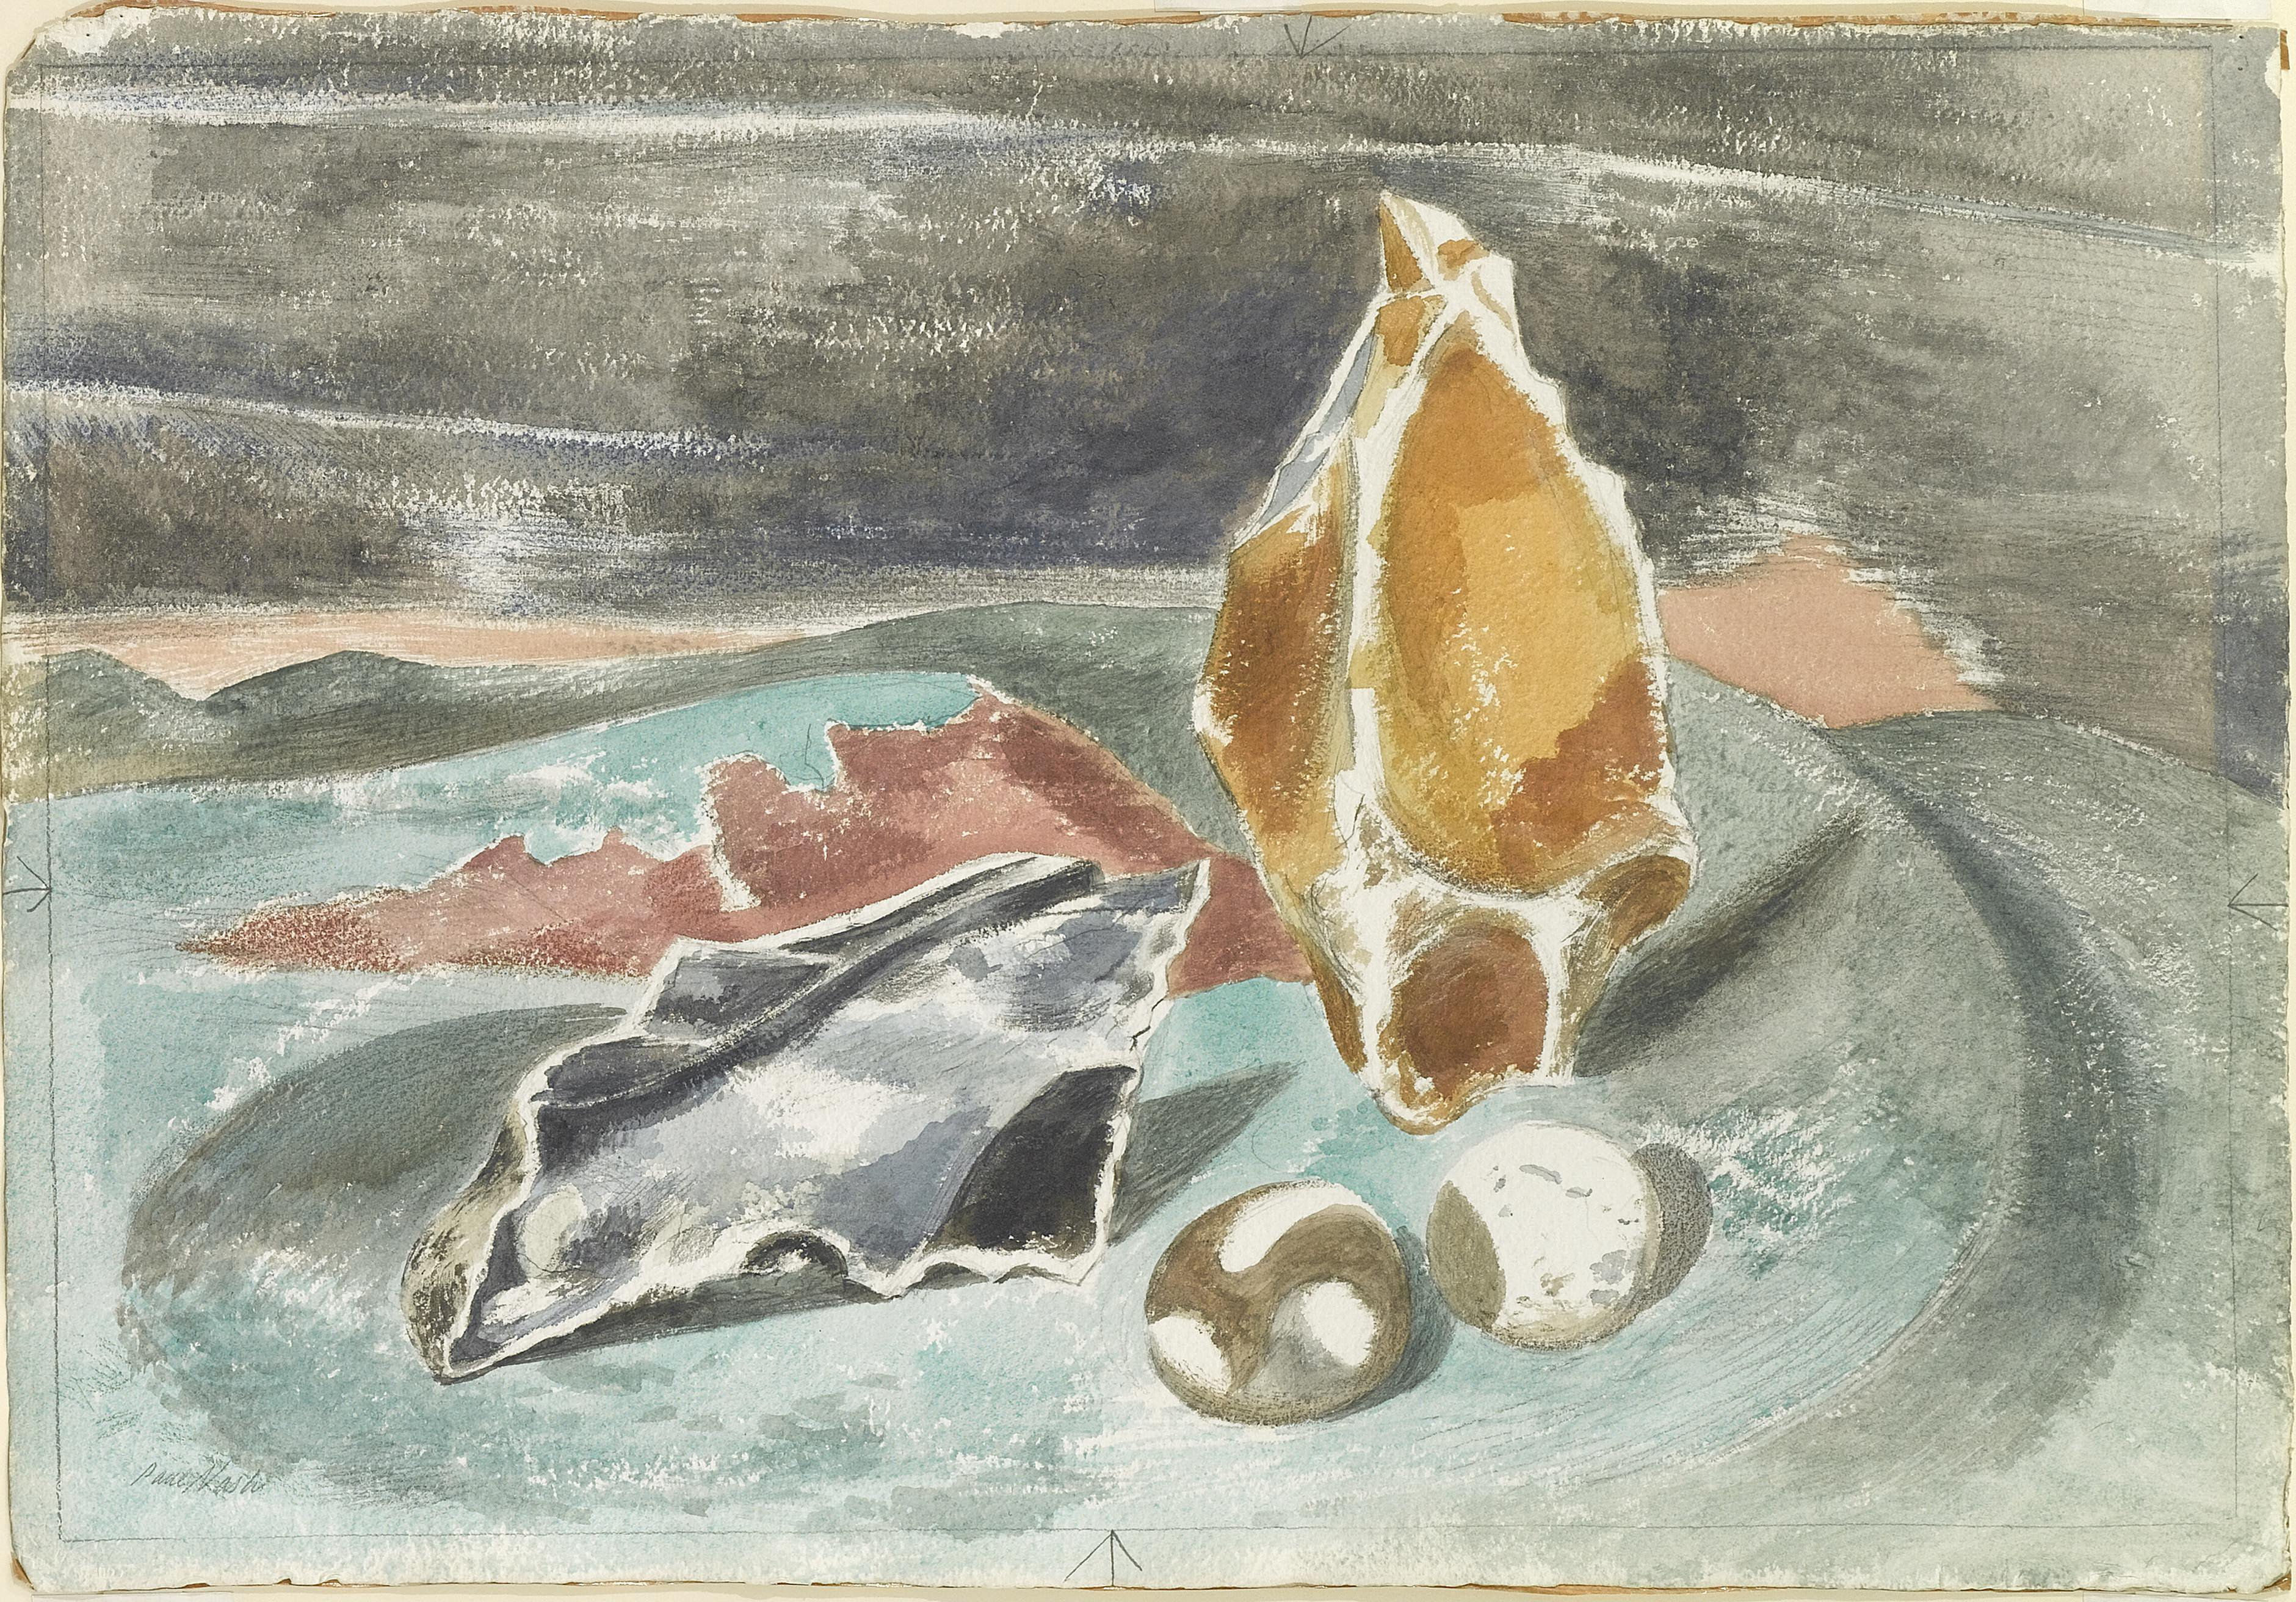 1937, watercolour and pencil on paper, 37.1 x 55 cm. Collection of Arts Council Collection, Southbank Centre (AC 30).